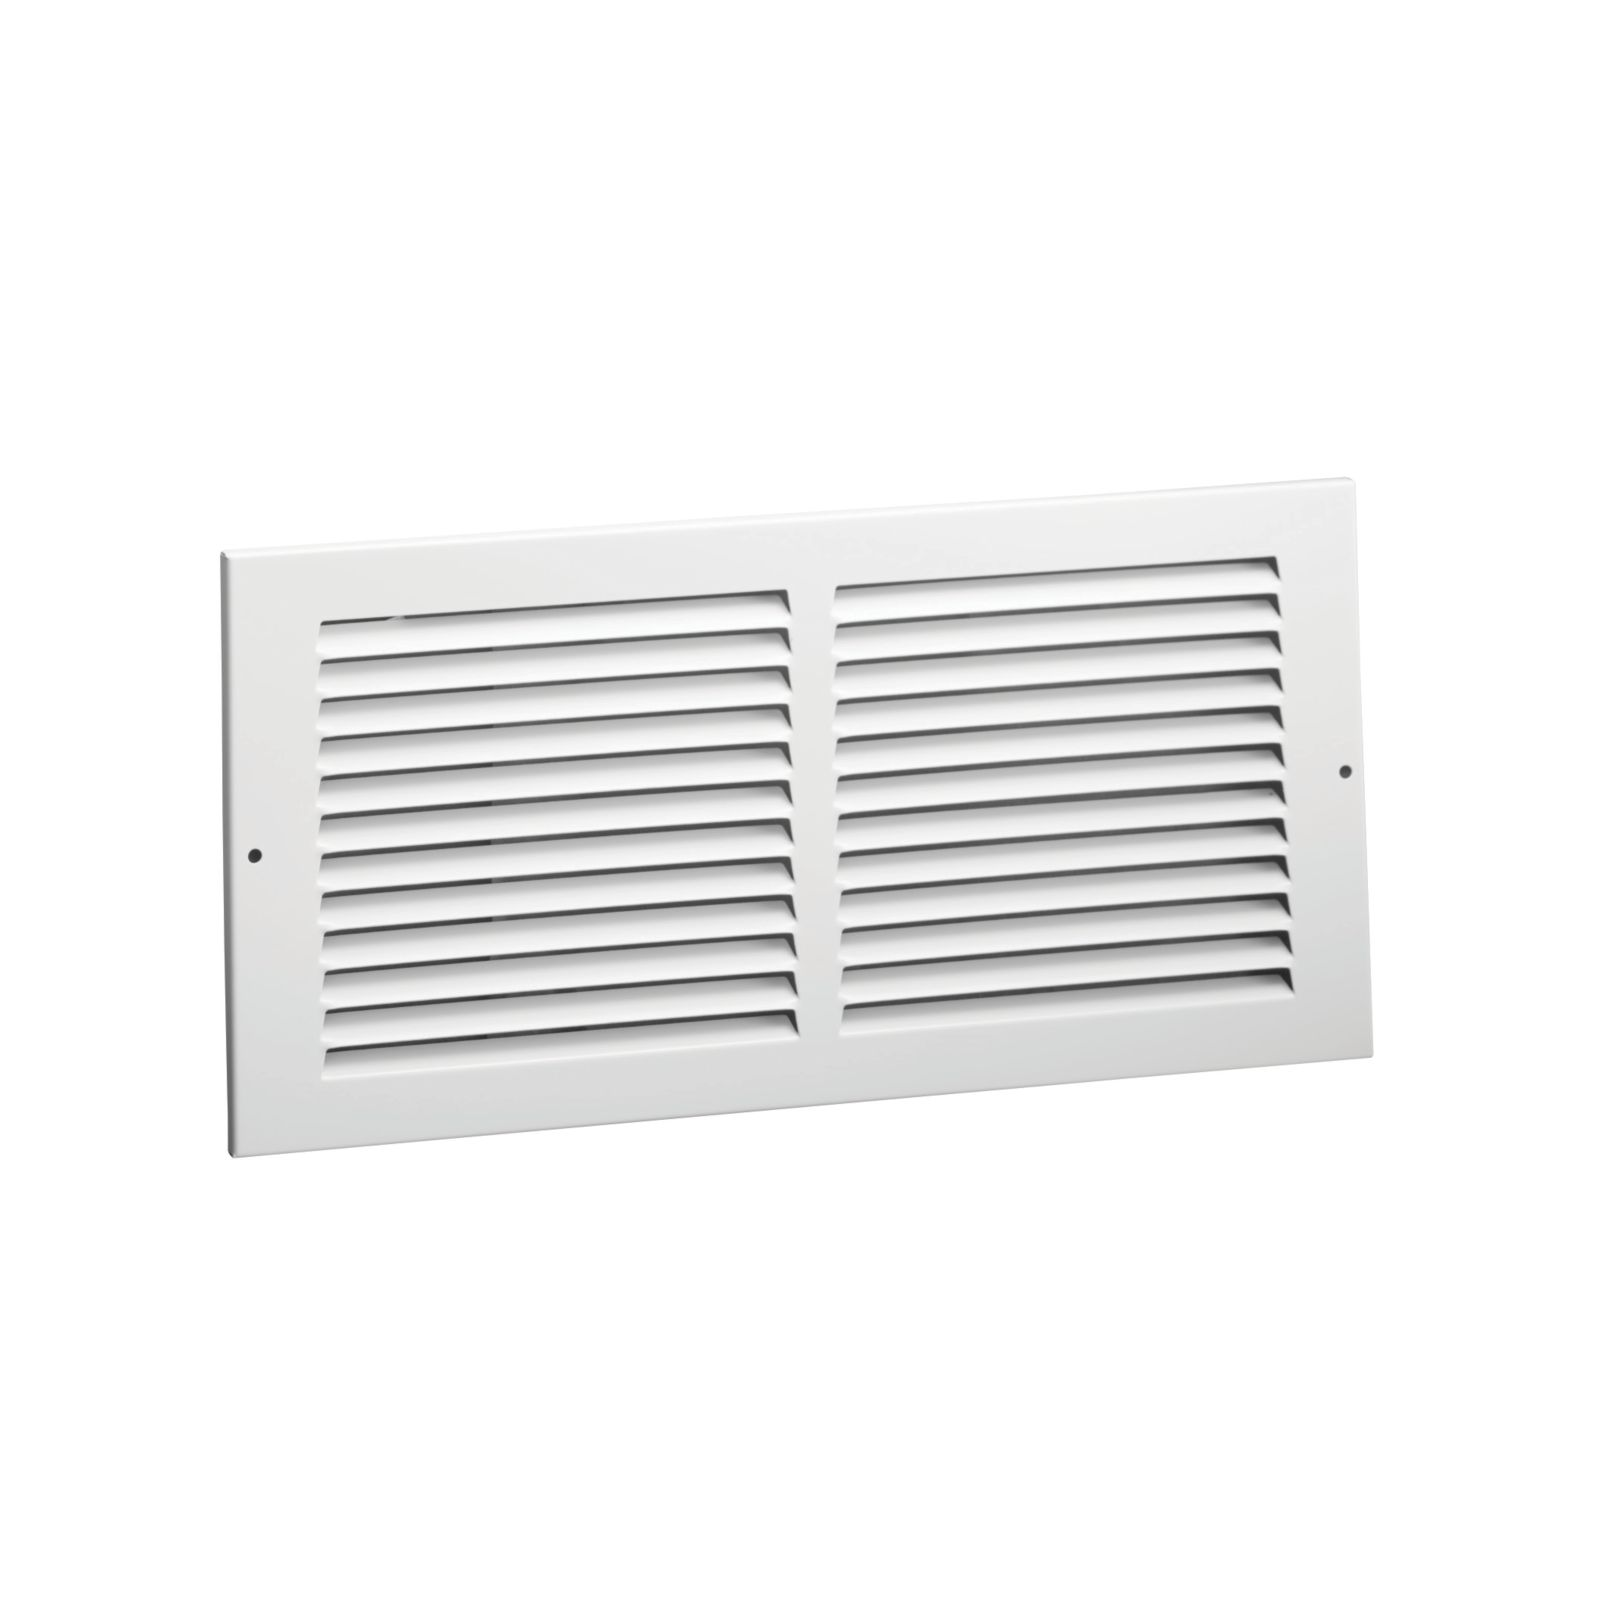 "Hart & Cooley 043307 - #672 Steel Return Air Grille, White Finish, 10"" X 4"""